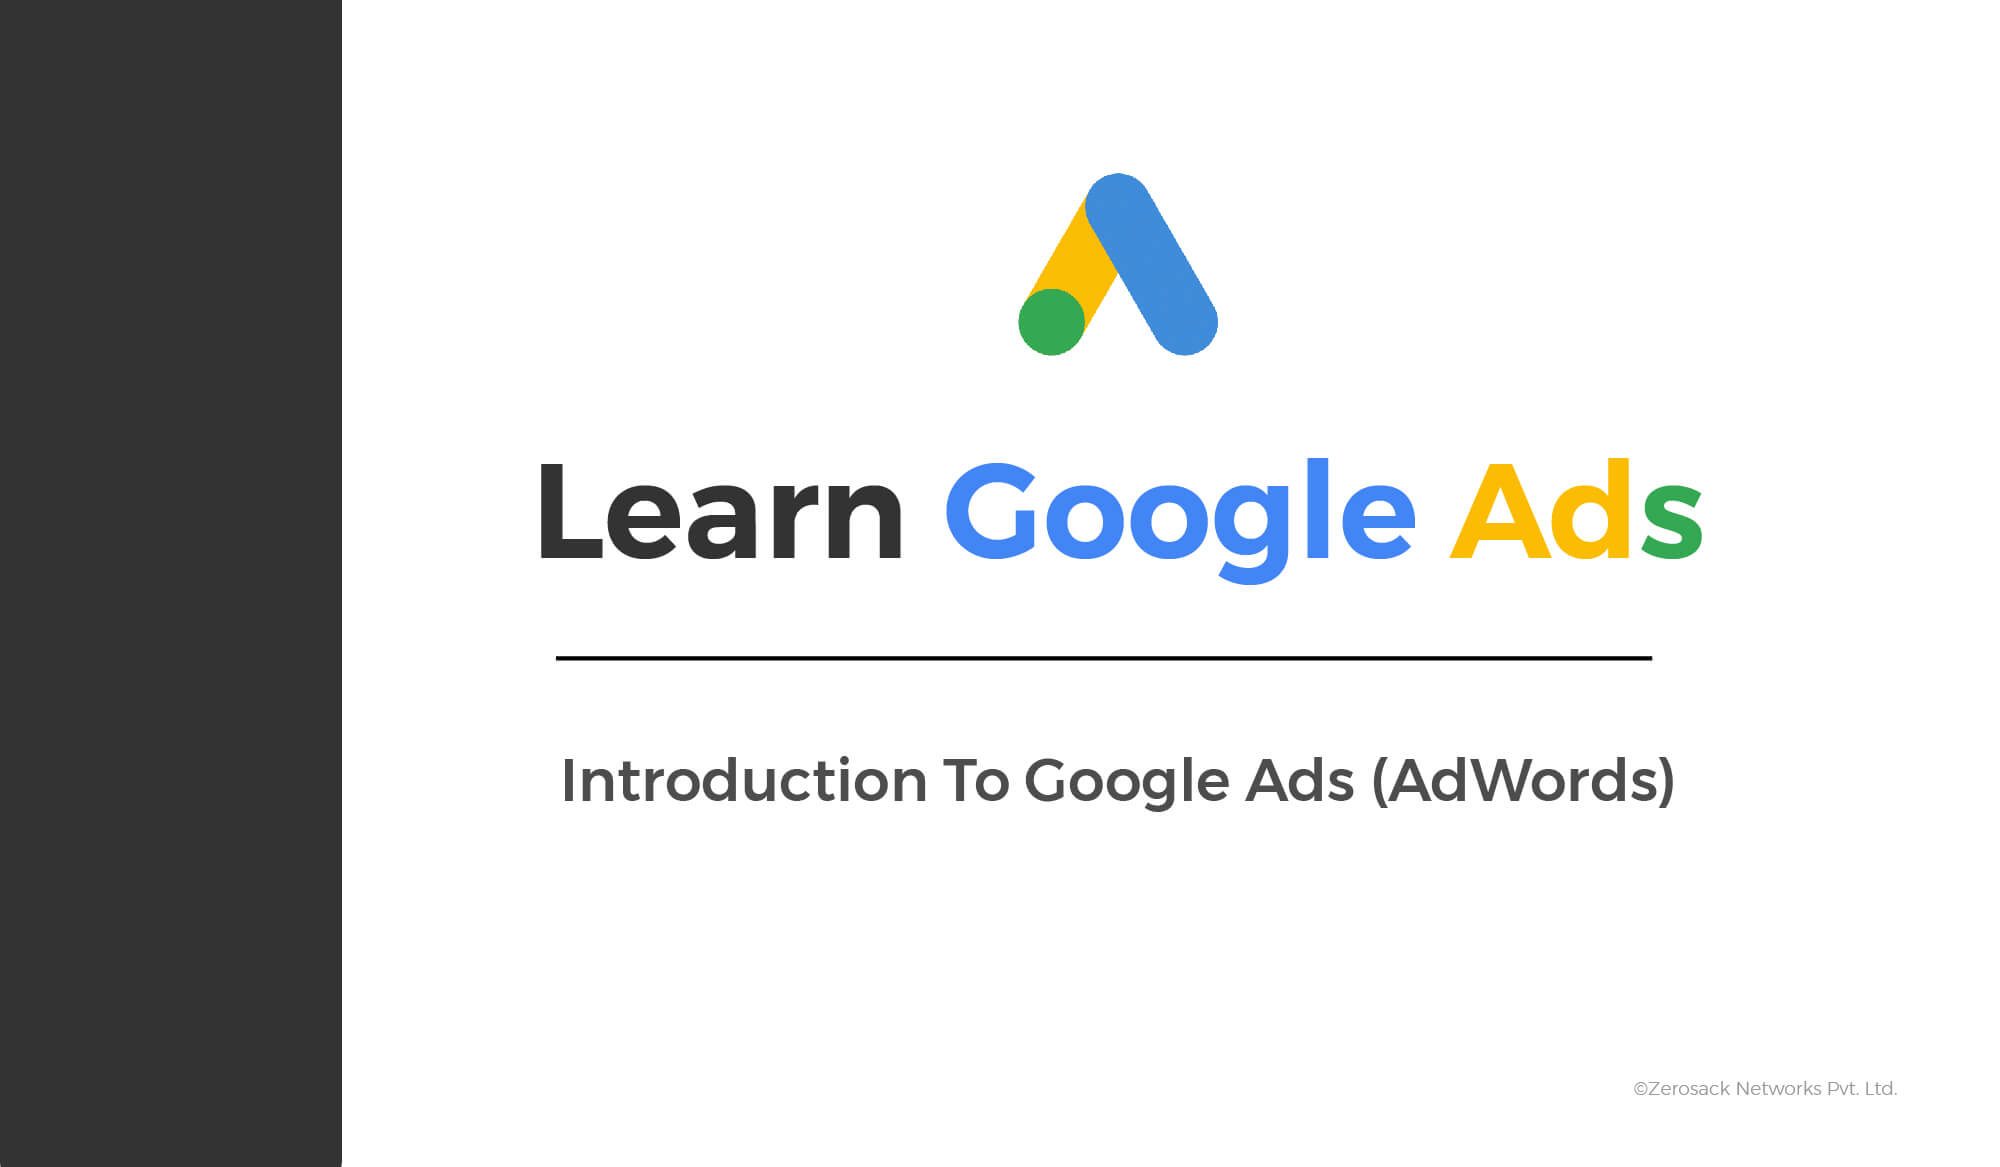 Introduction-To-Google-Ads-(AdWords)